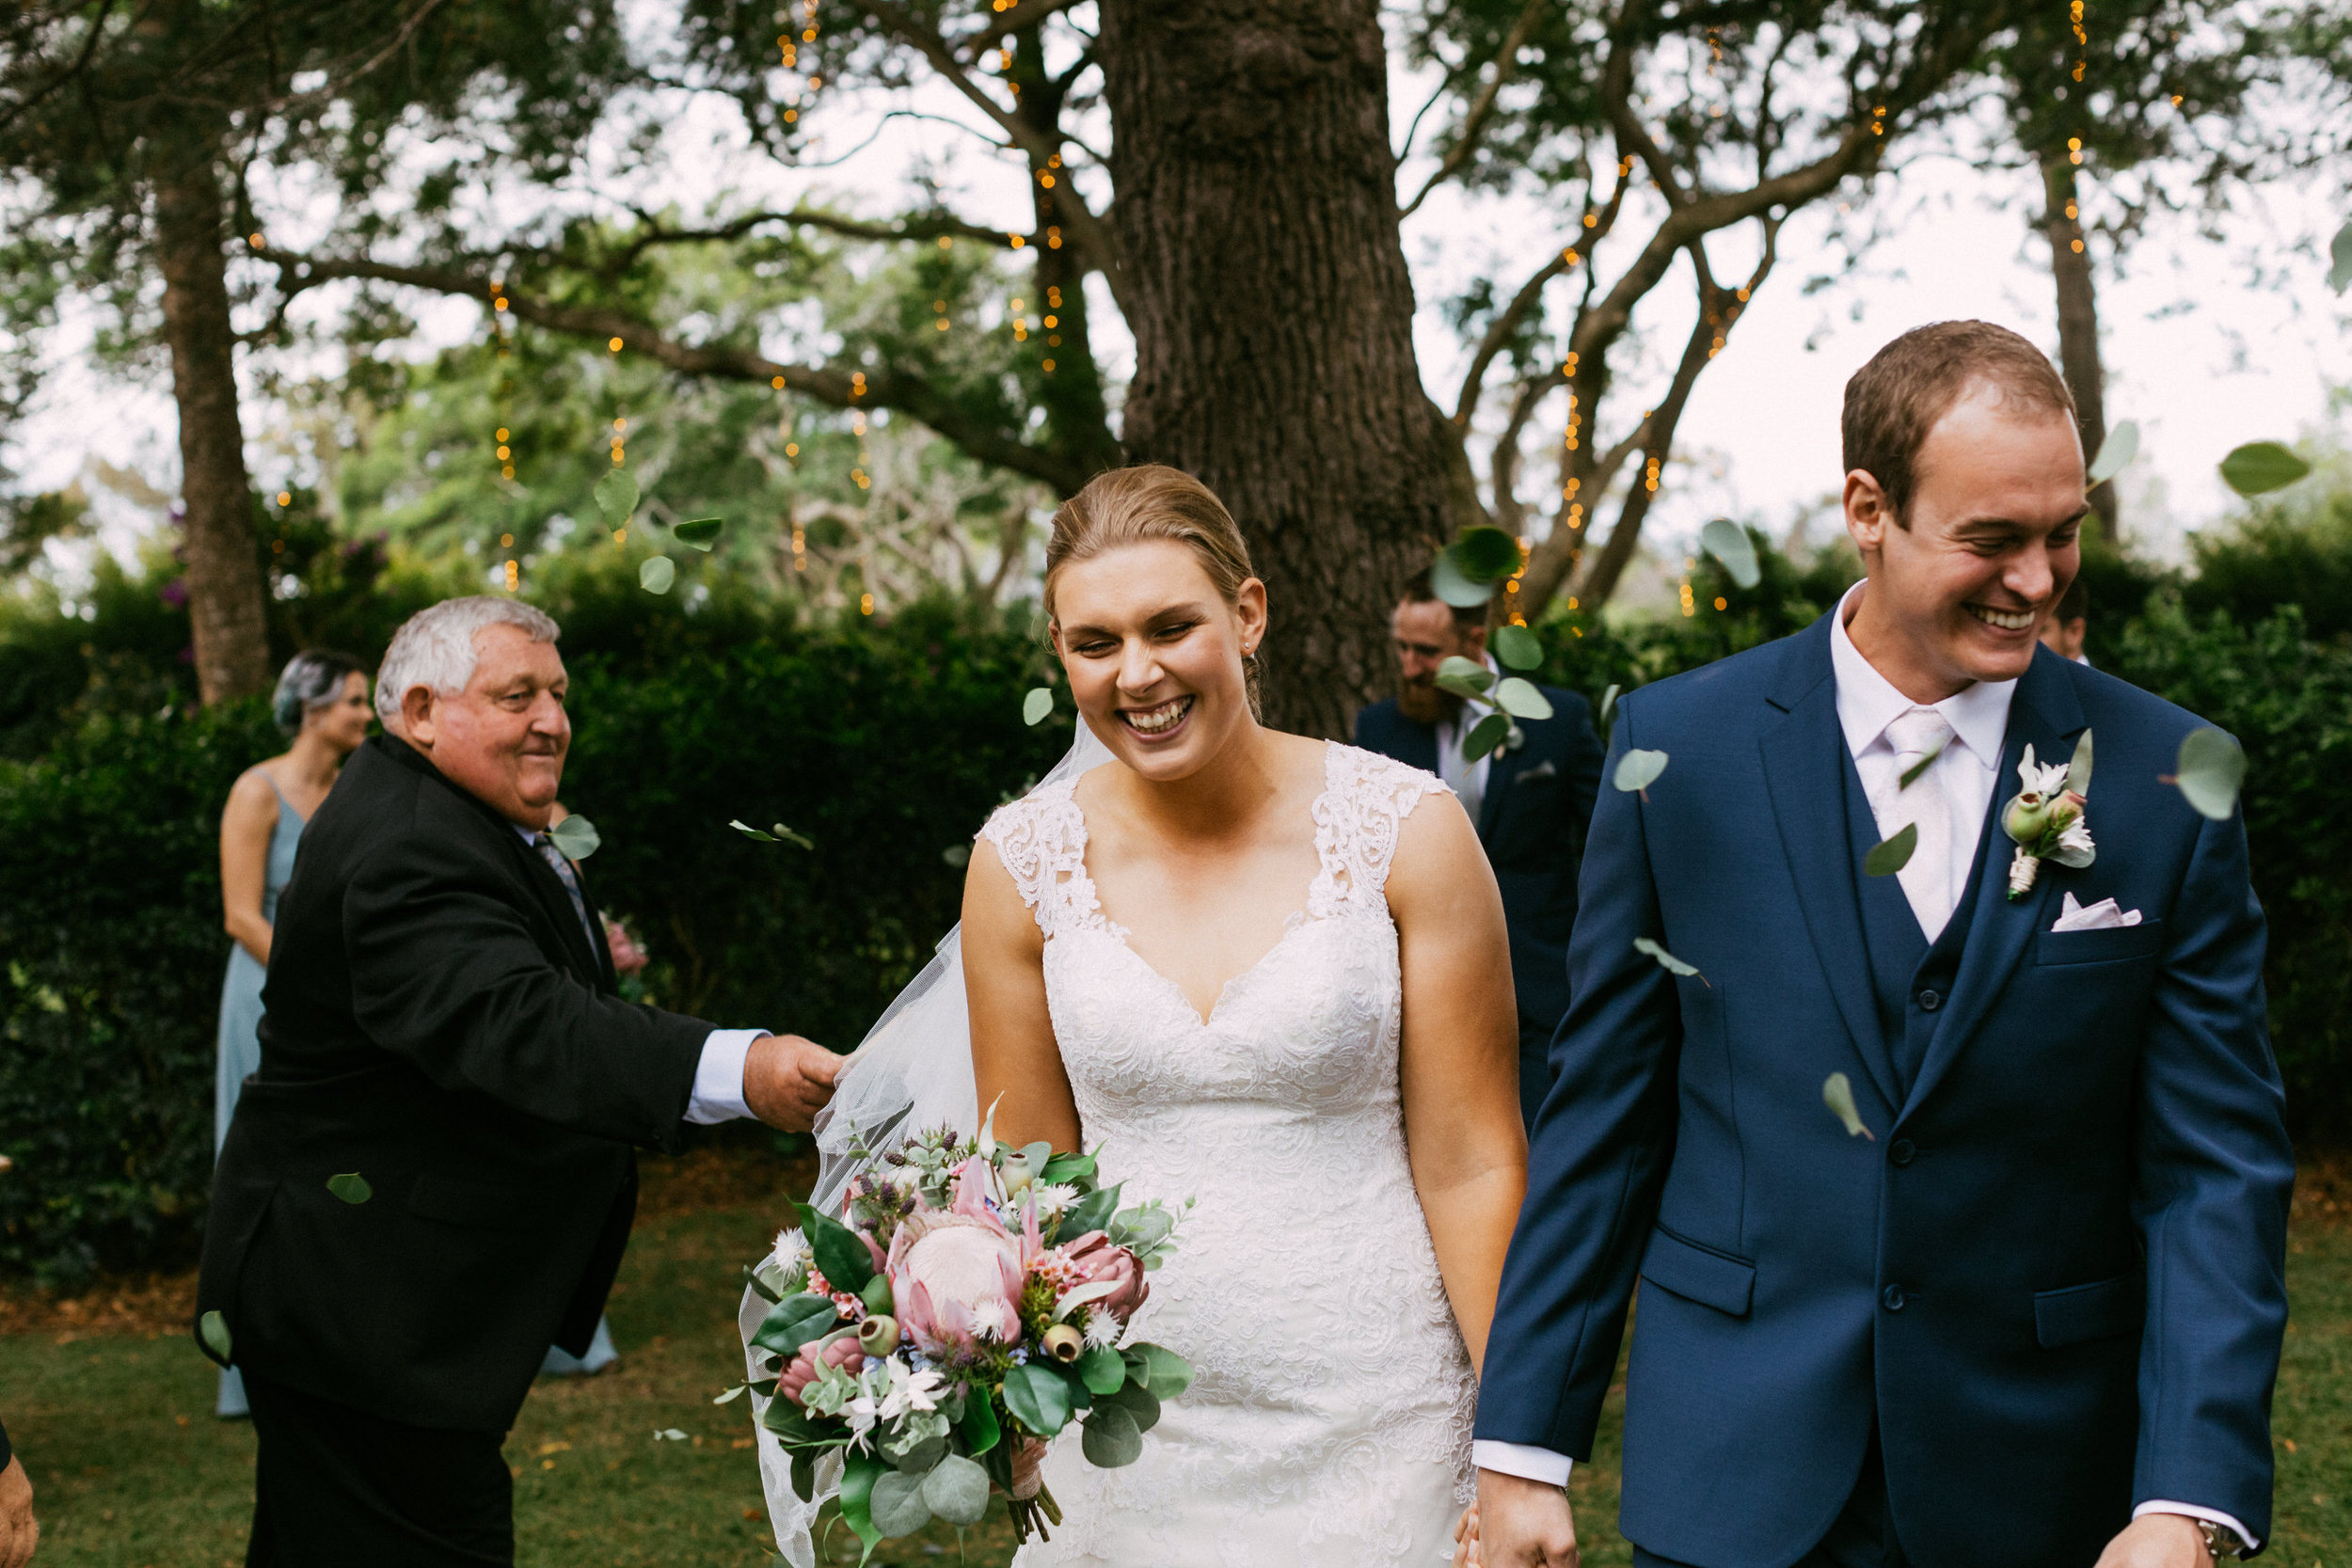 Toowoomba QLD Wedding 103.jpg